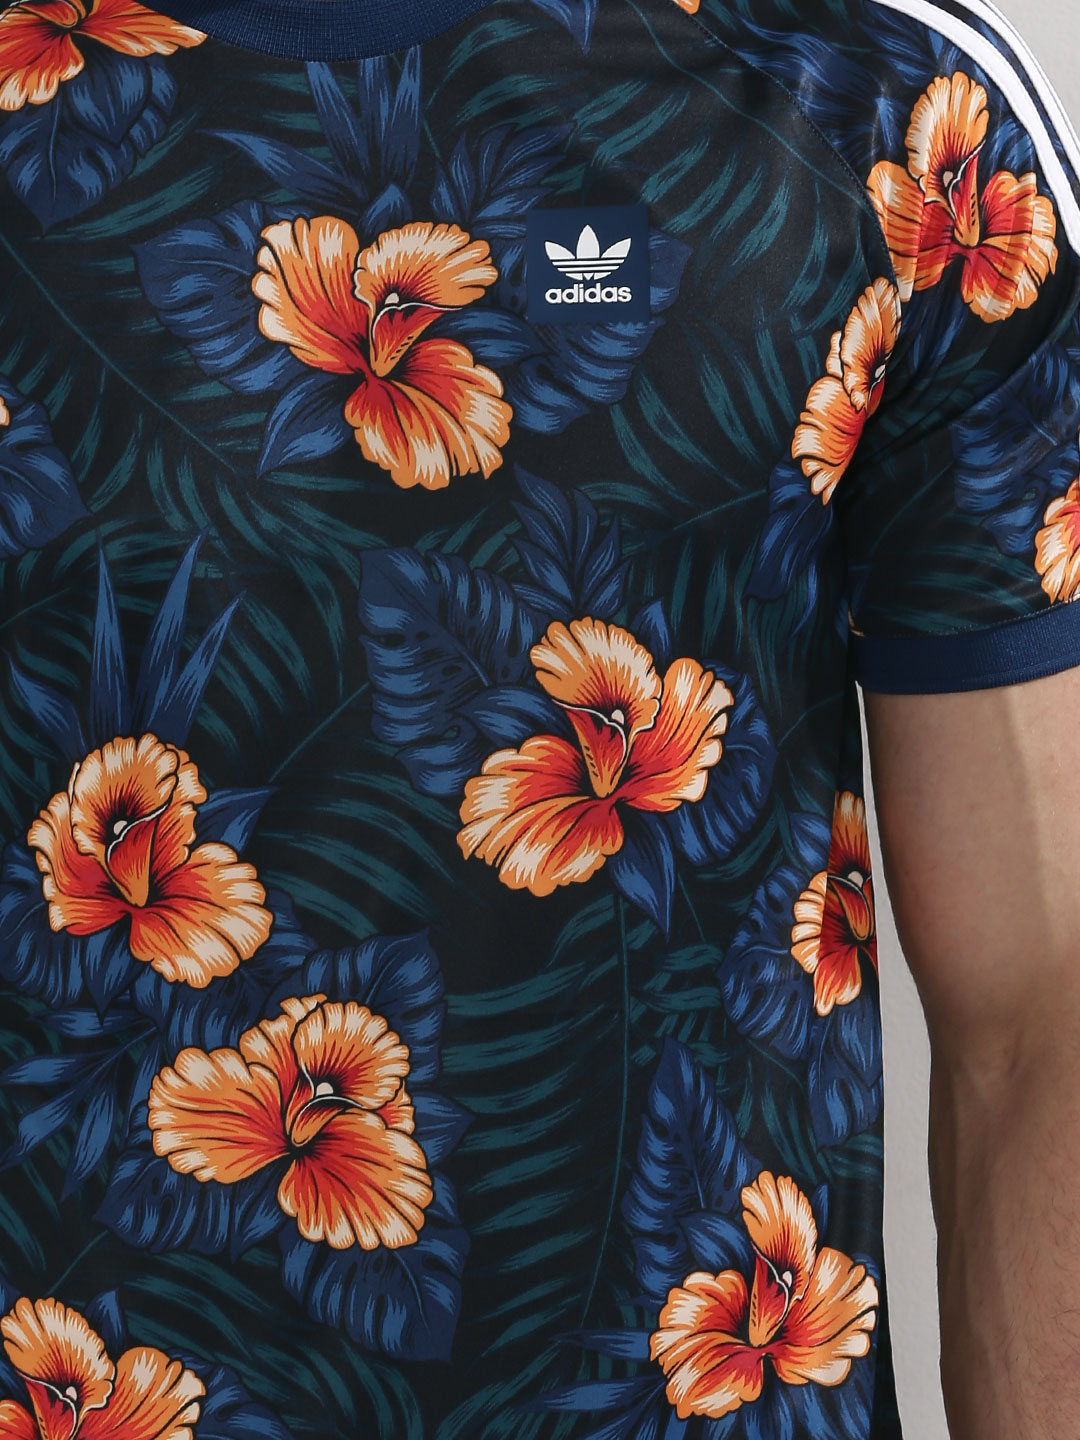 Buy Adidas Originals Multi Floral Jersey With Sleeve Stripe